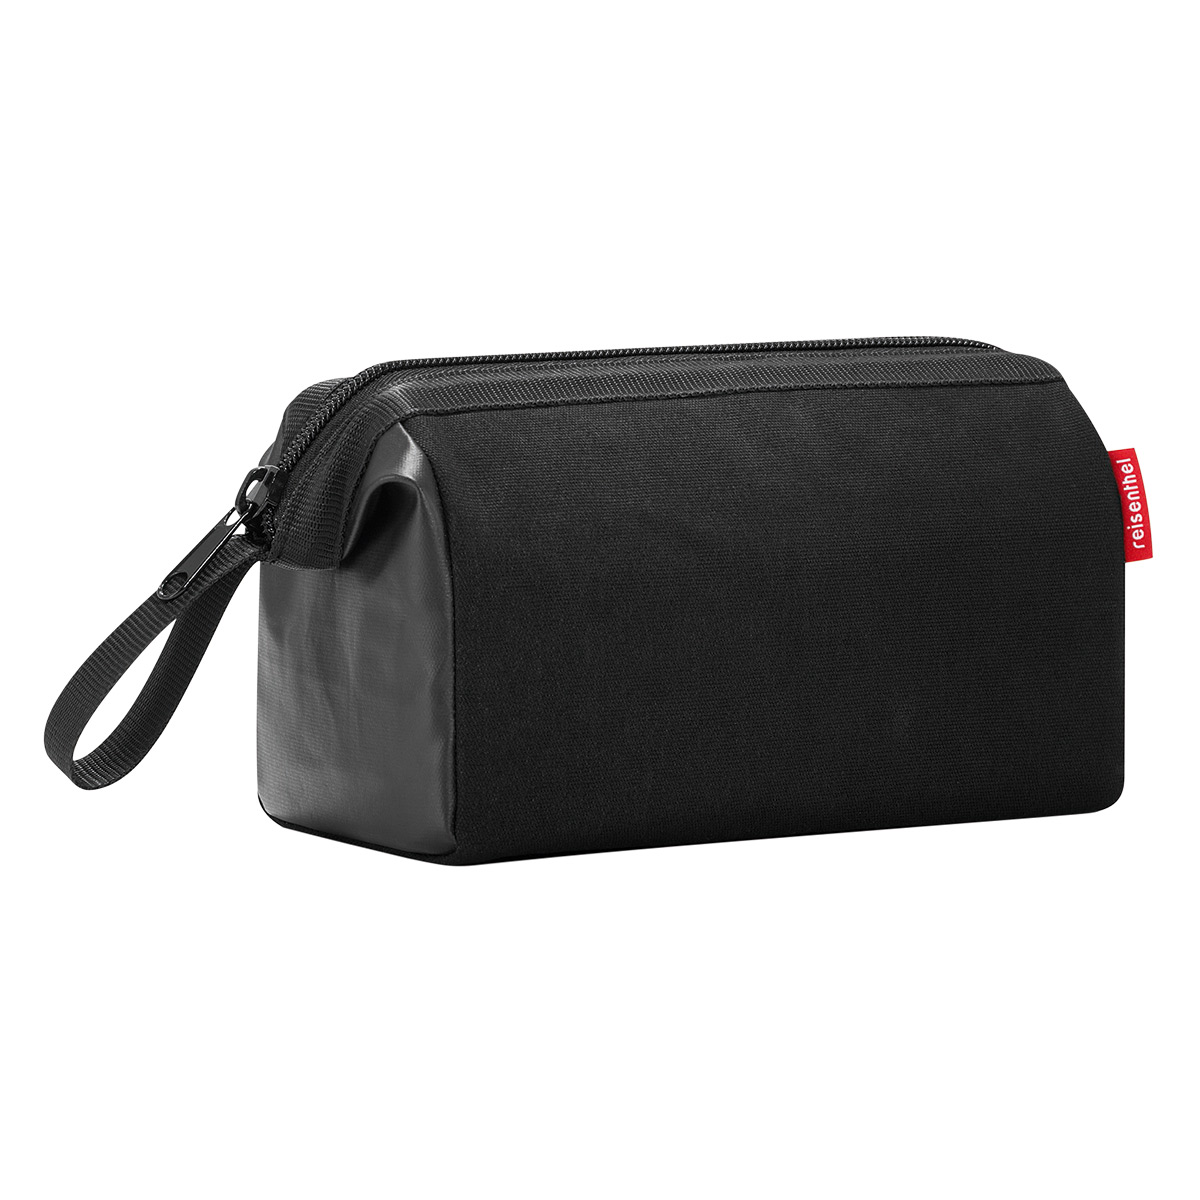 reisenthel Black Cosmetic Case